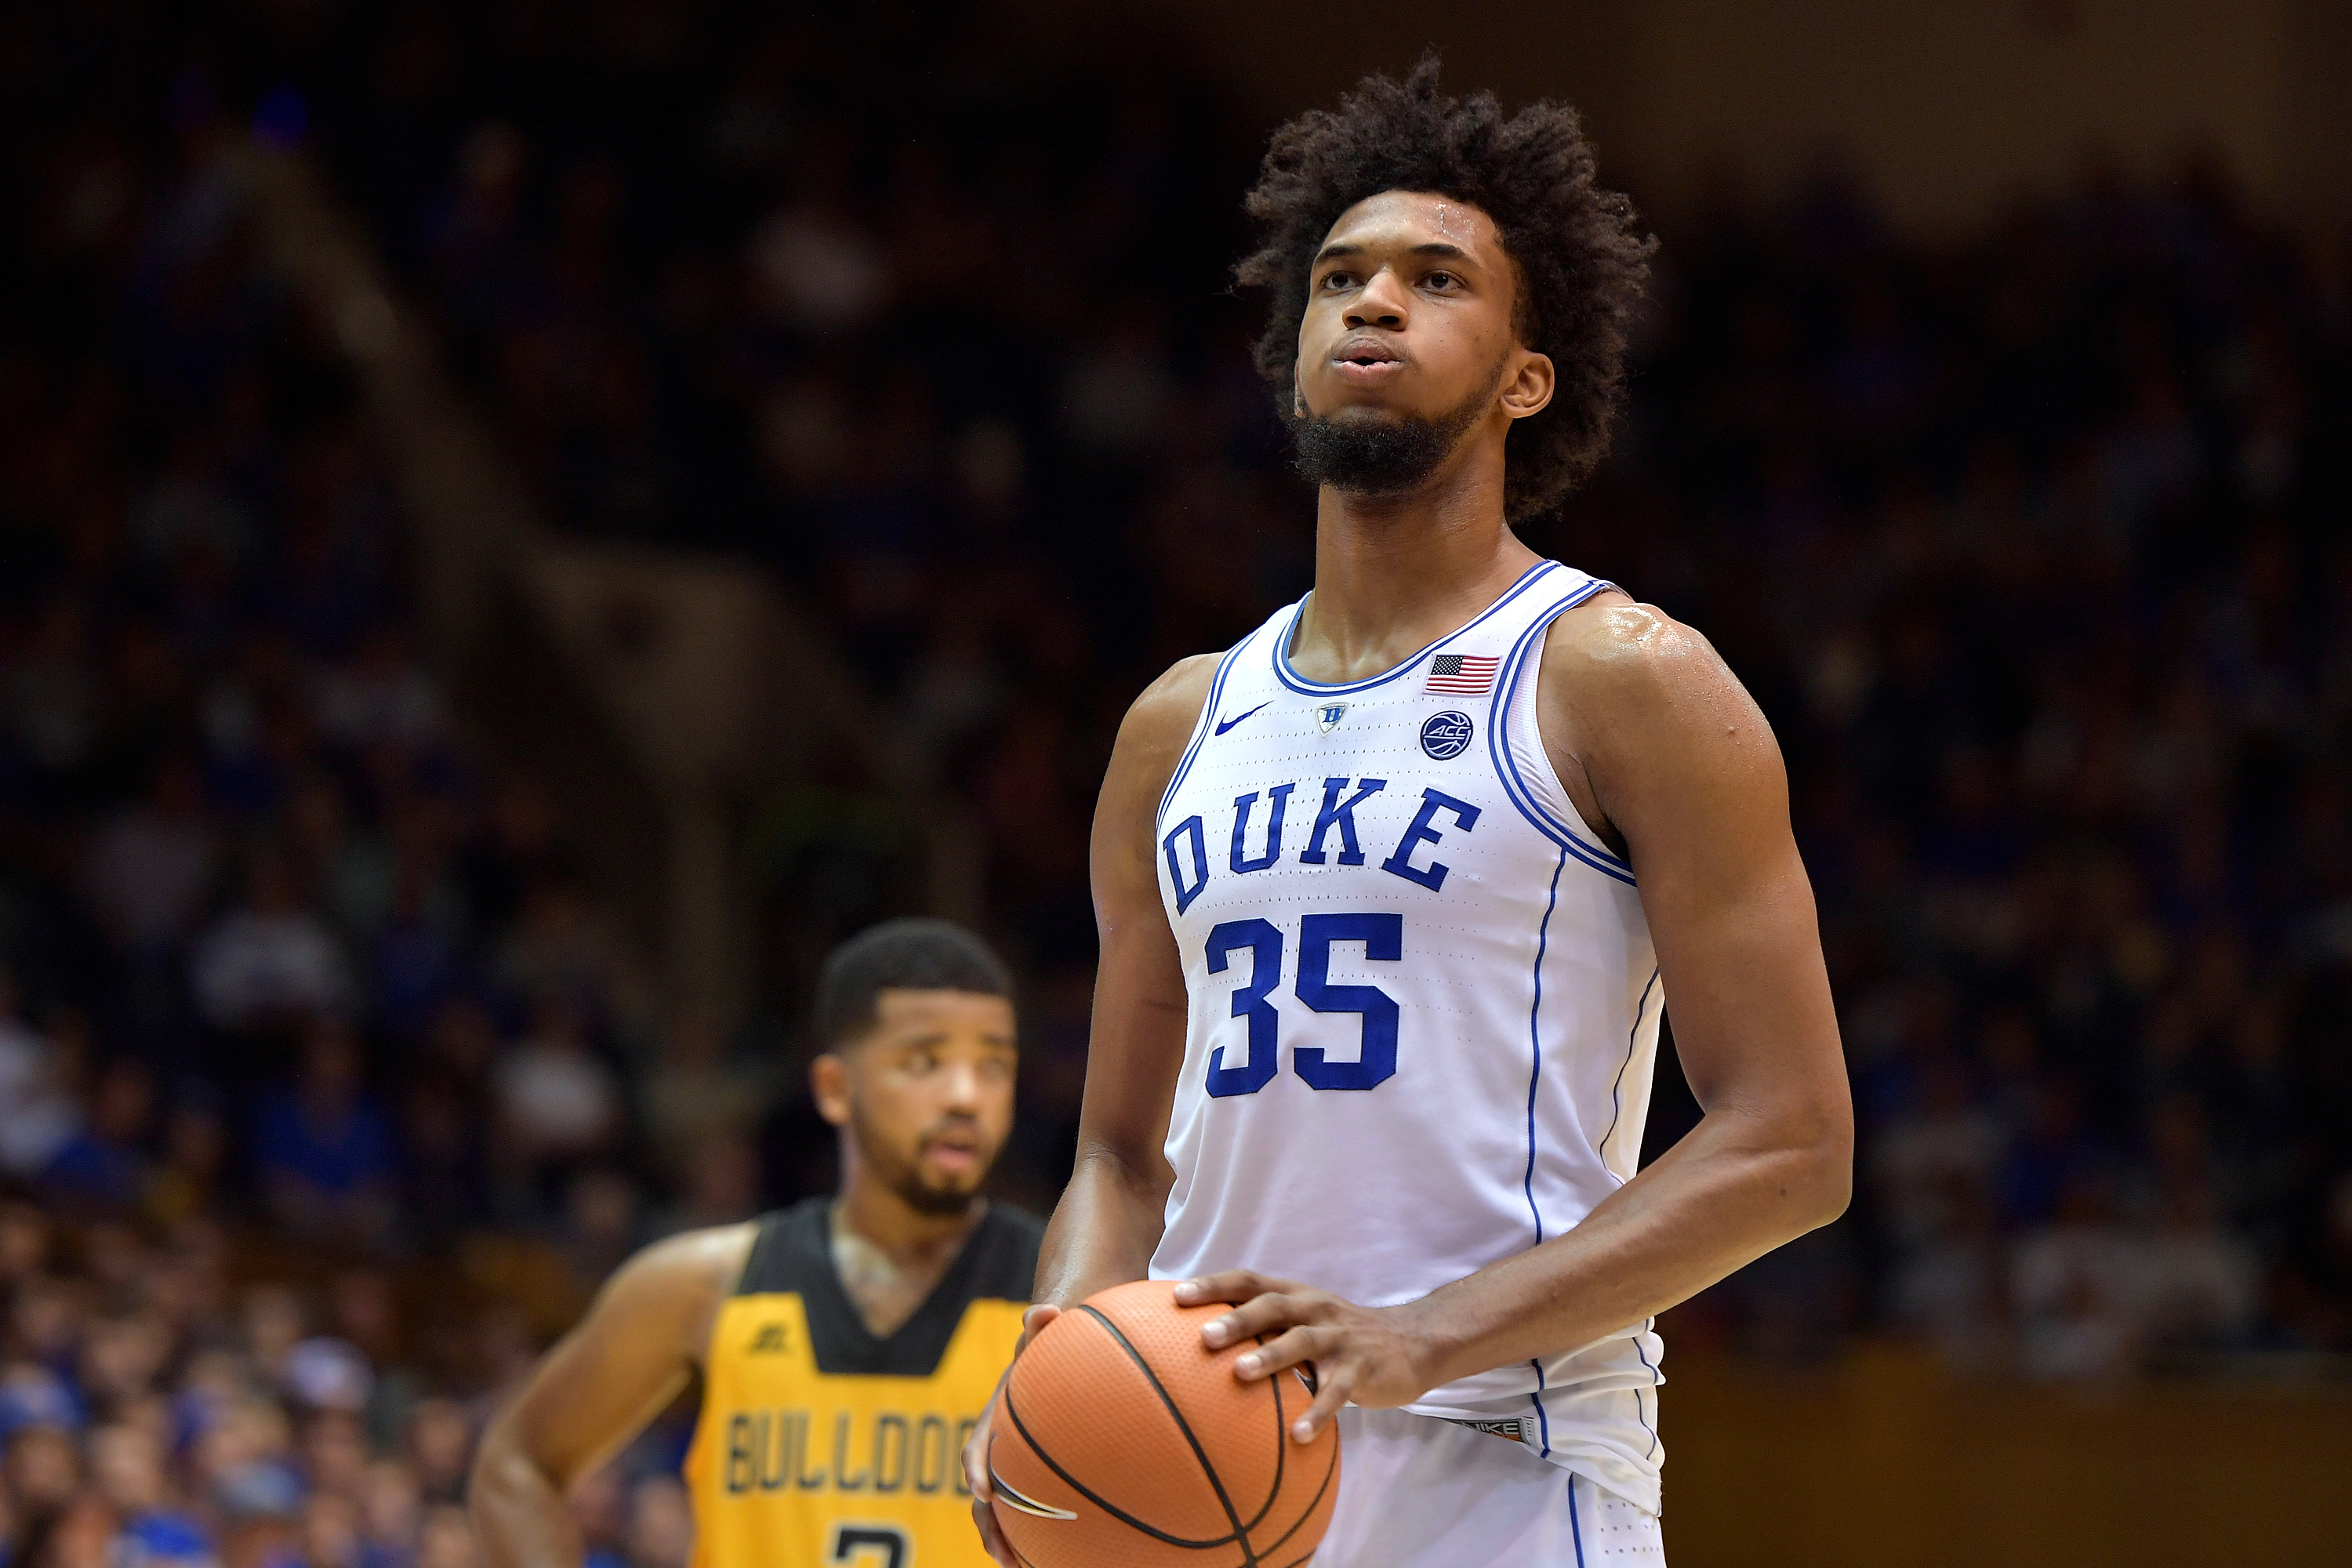 timeless design eb297 7dbb6 Marvin Bagley III Sets Duke Freshman Record with 25 Points ...